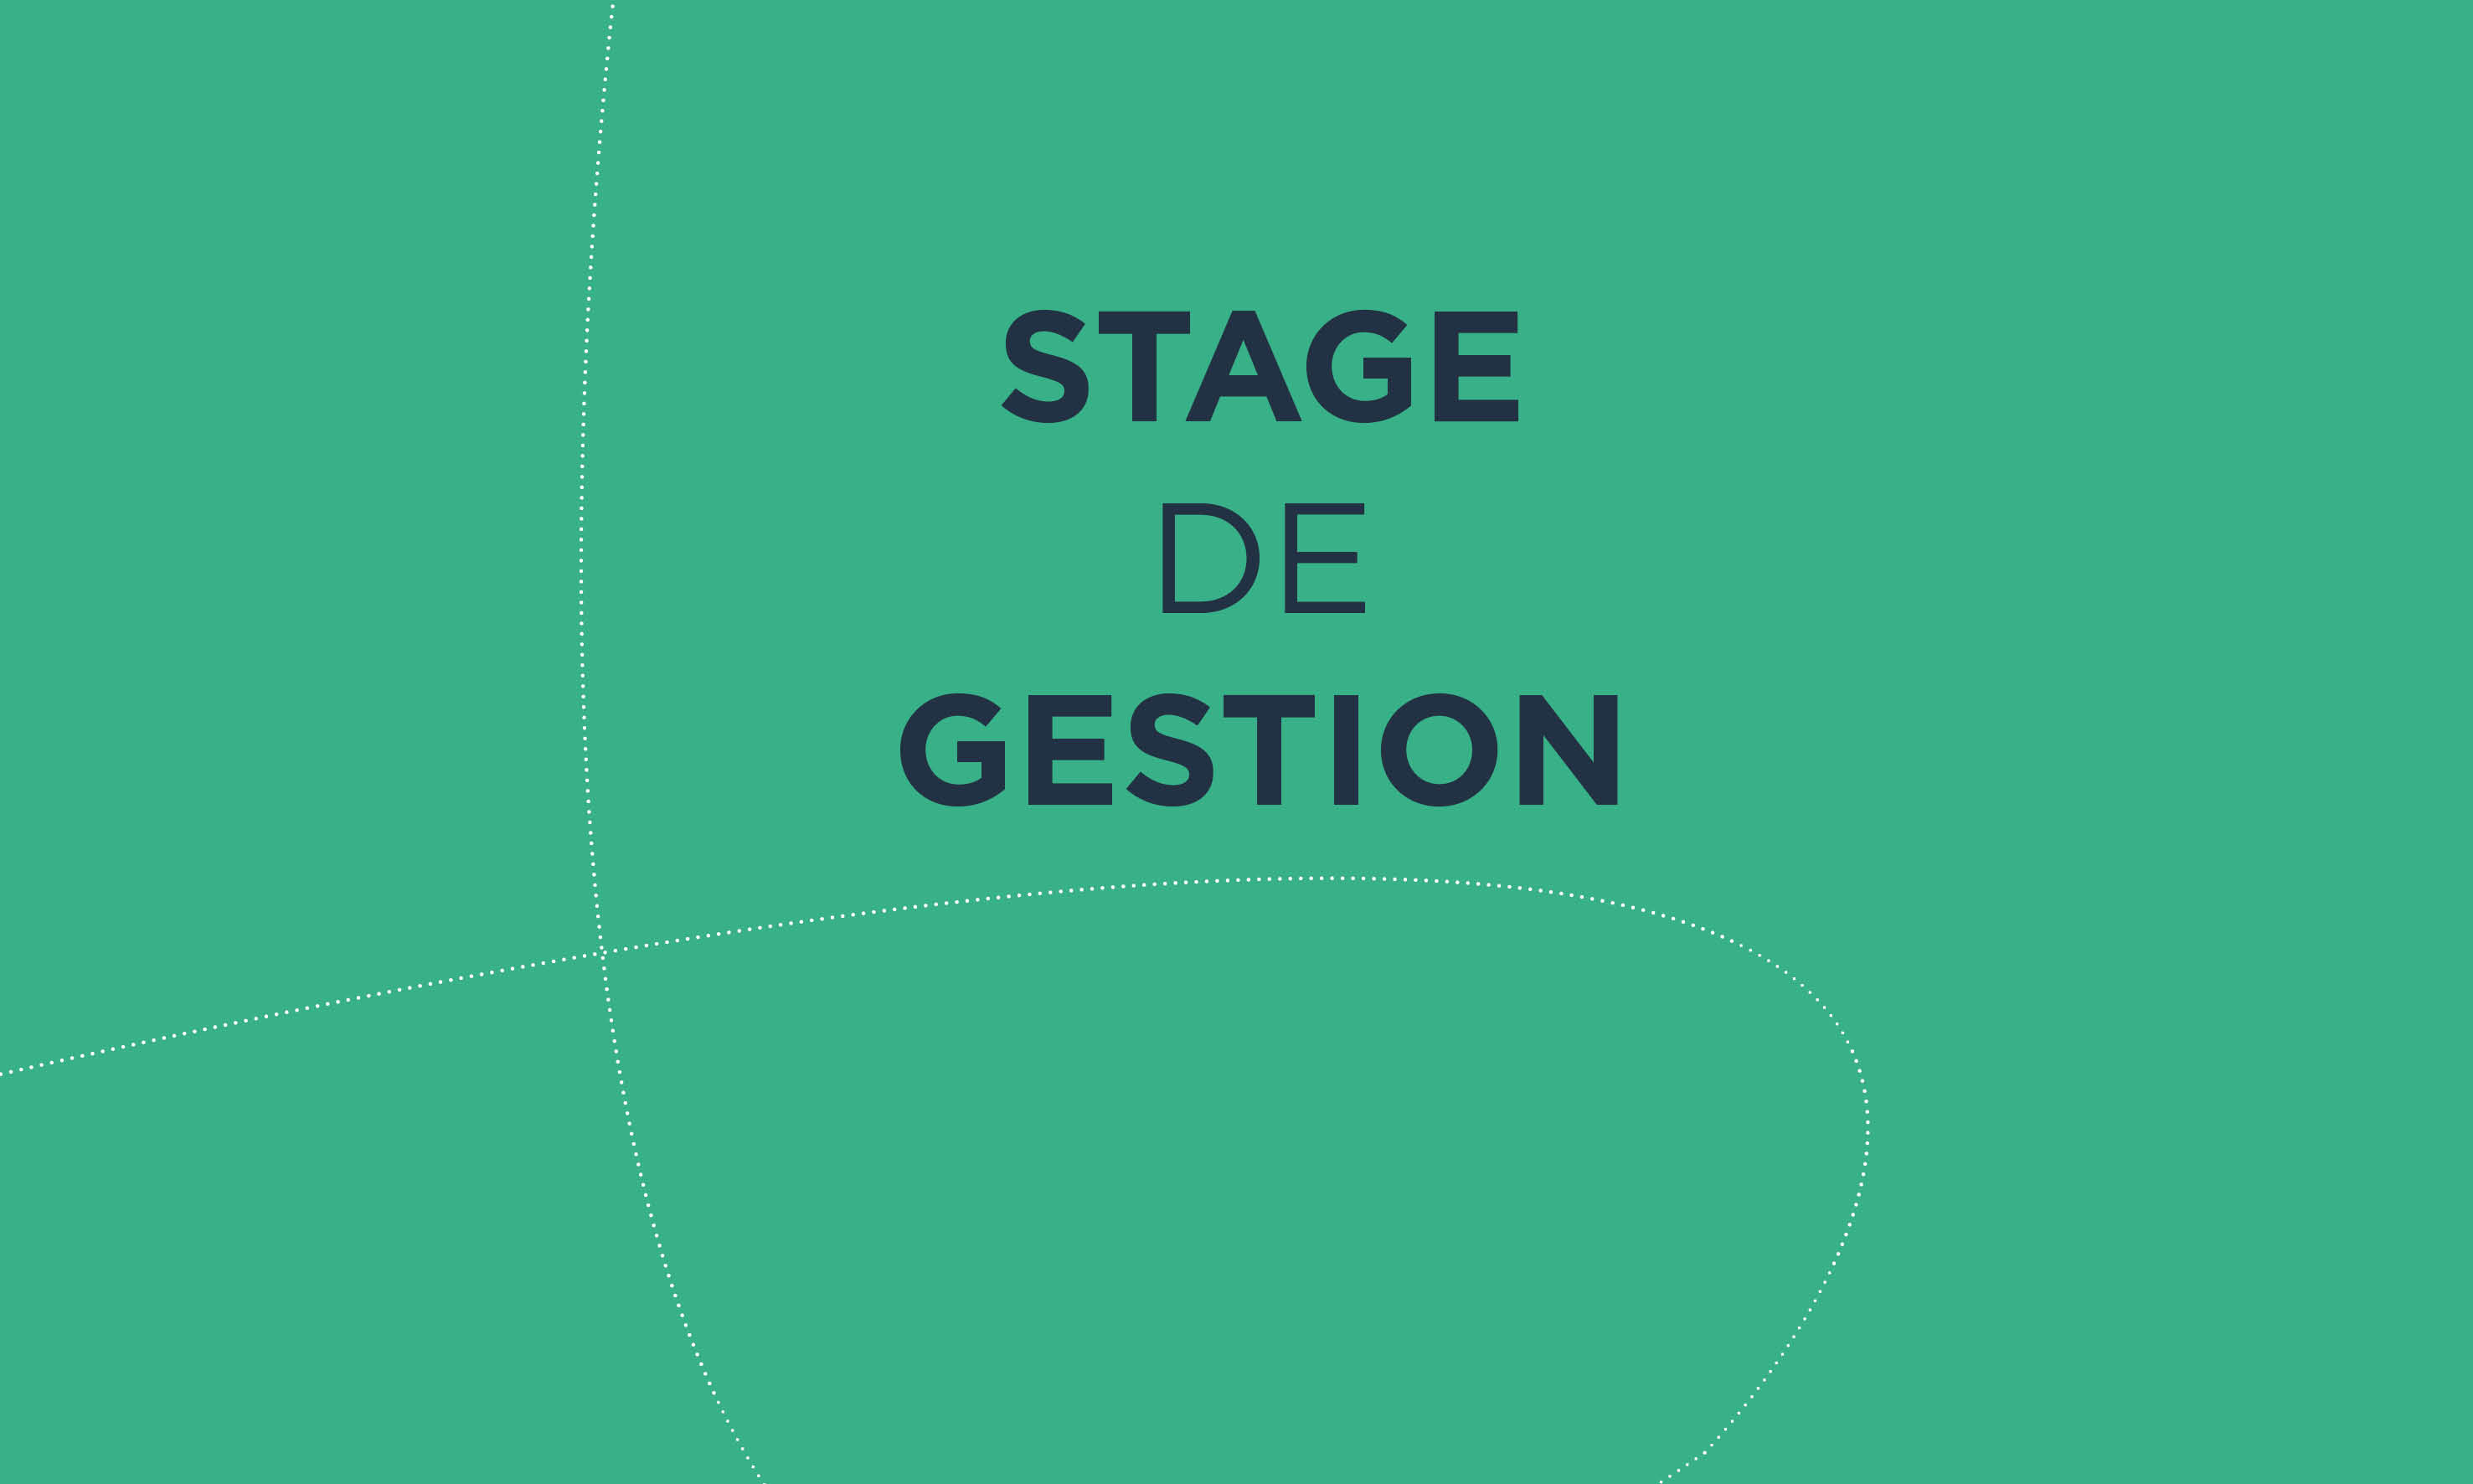 STAGE GESTION